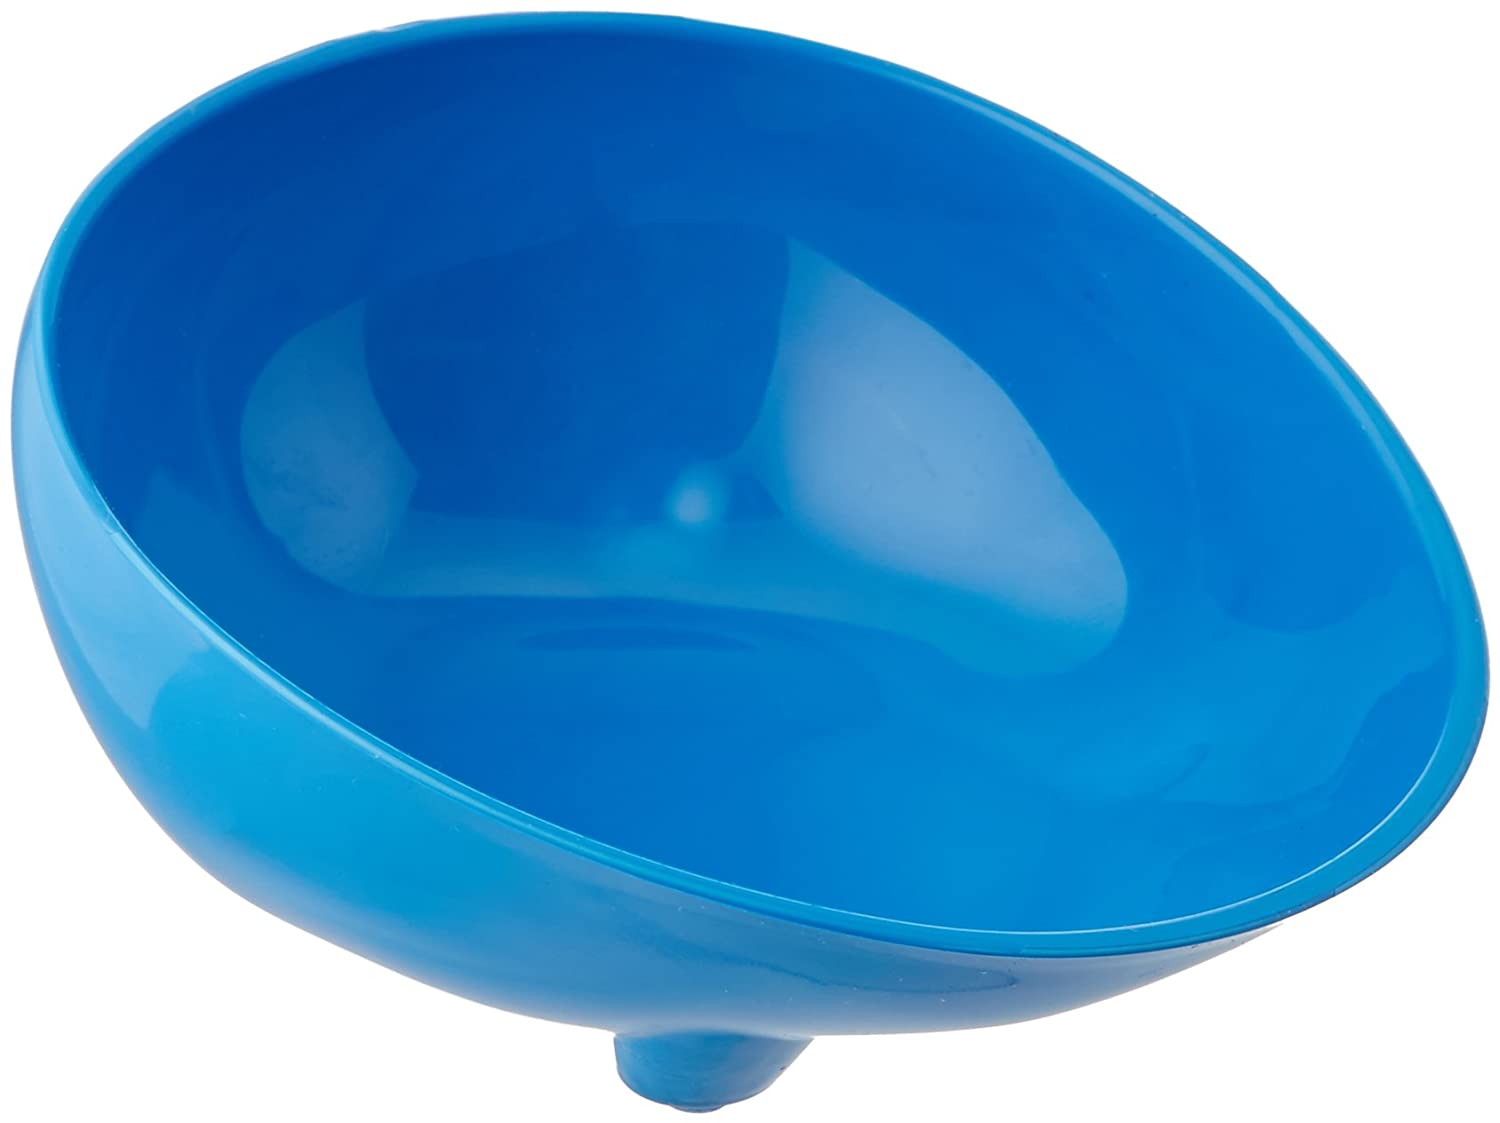 Sammons Preston 55520 Blue Polyester Scooper Bowl Hi Lo Dish With Contoured Lip And Non Skid Feet For Independent Eating For Elderly Kids Handicapped And Disabled Heavy Duty Poly Bowls Industrial Scientific Amazon Com